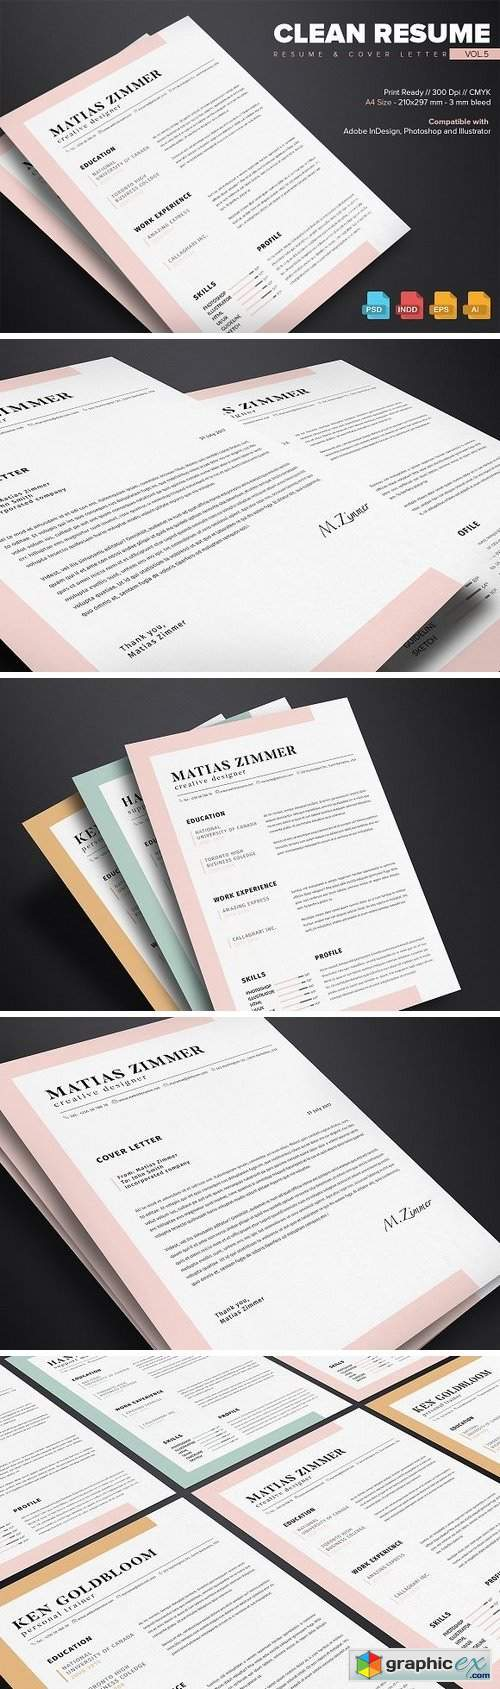 Clean Resume Template Vol.5